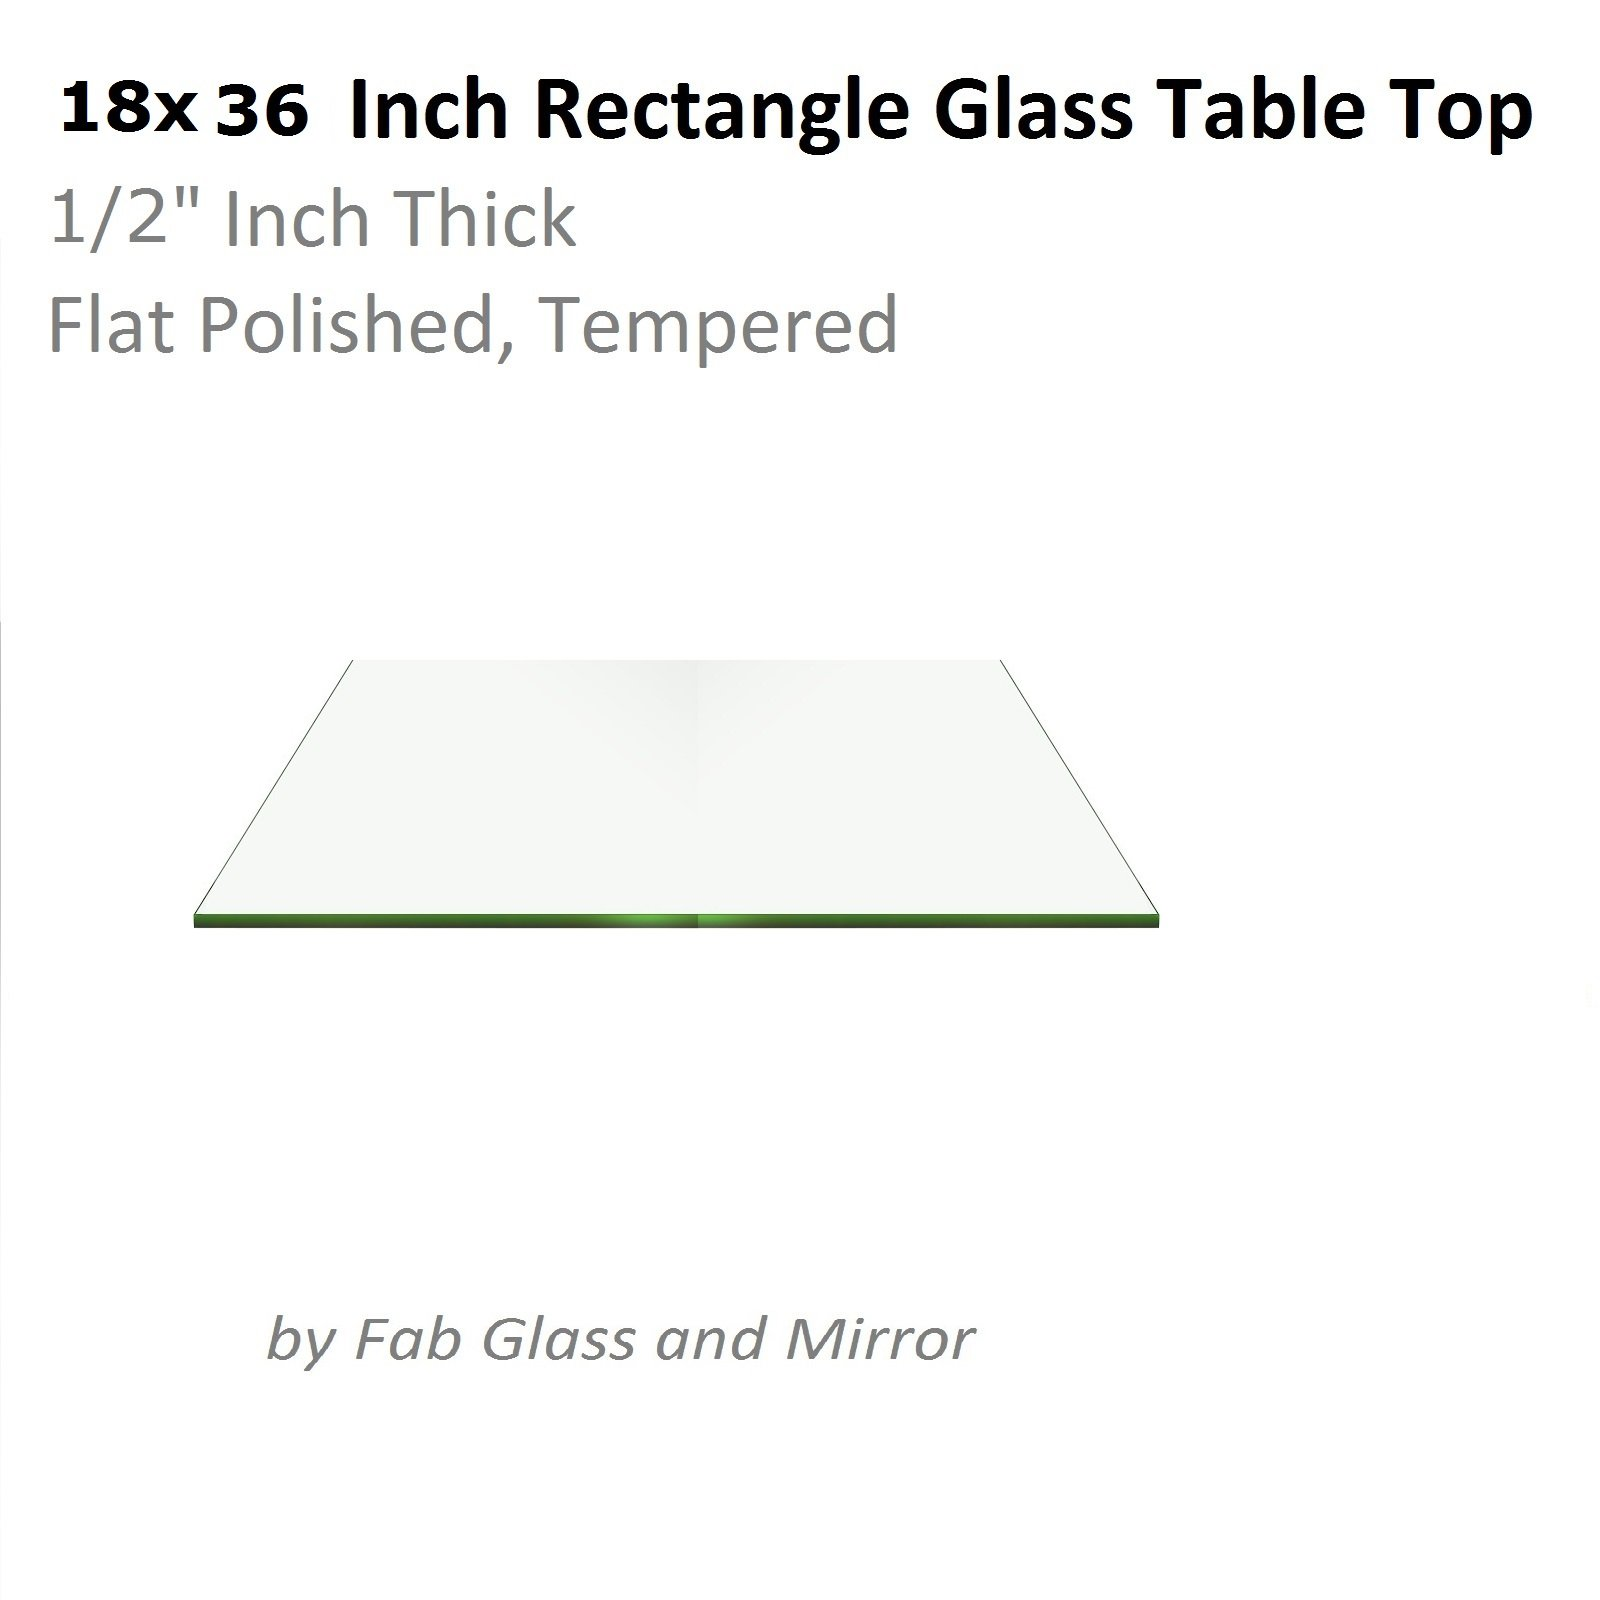 "Fab Glass and Mirror 1/2"" Thick Flat Edge"